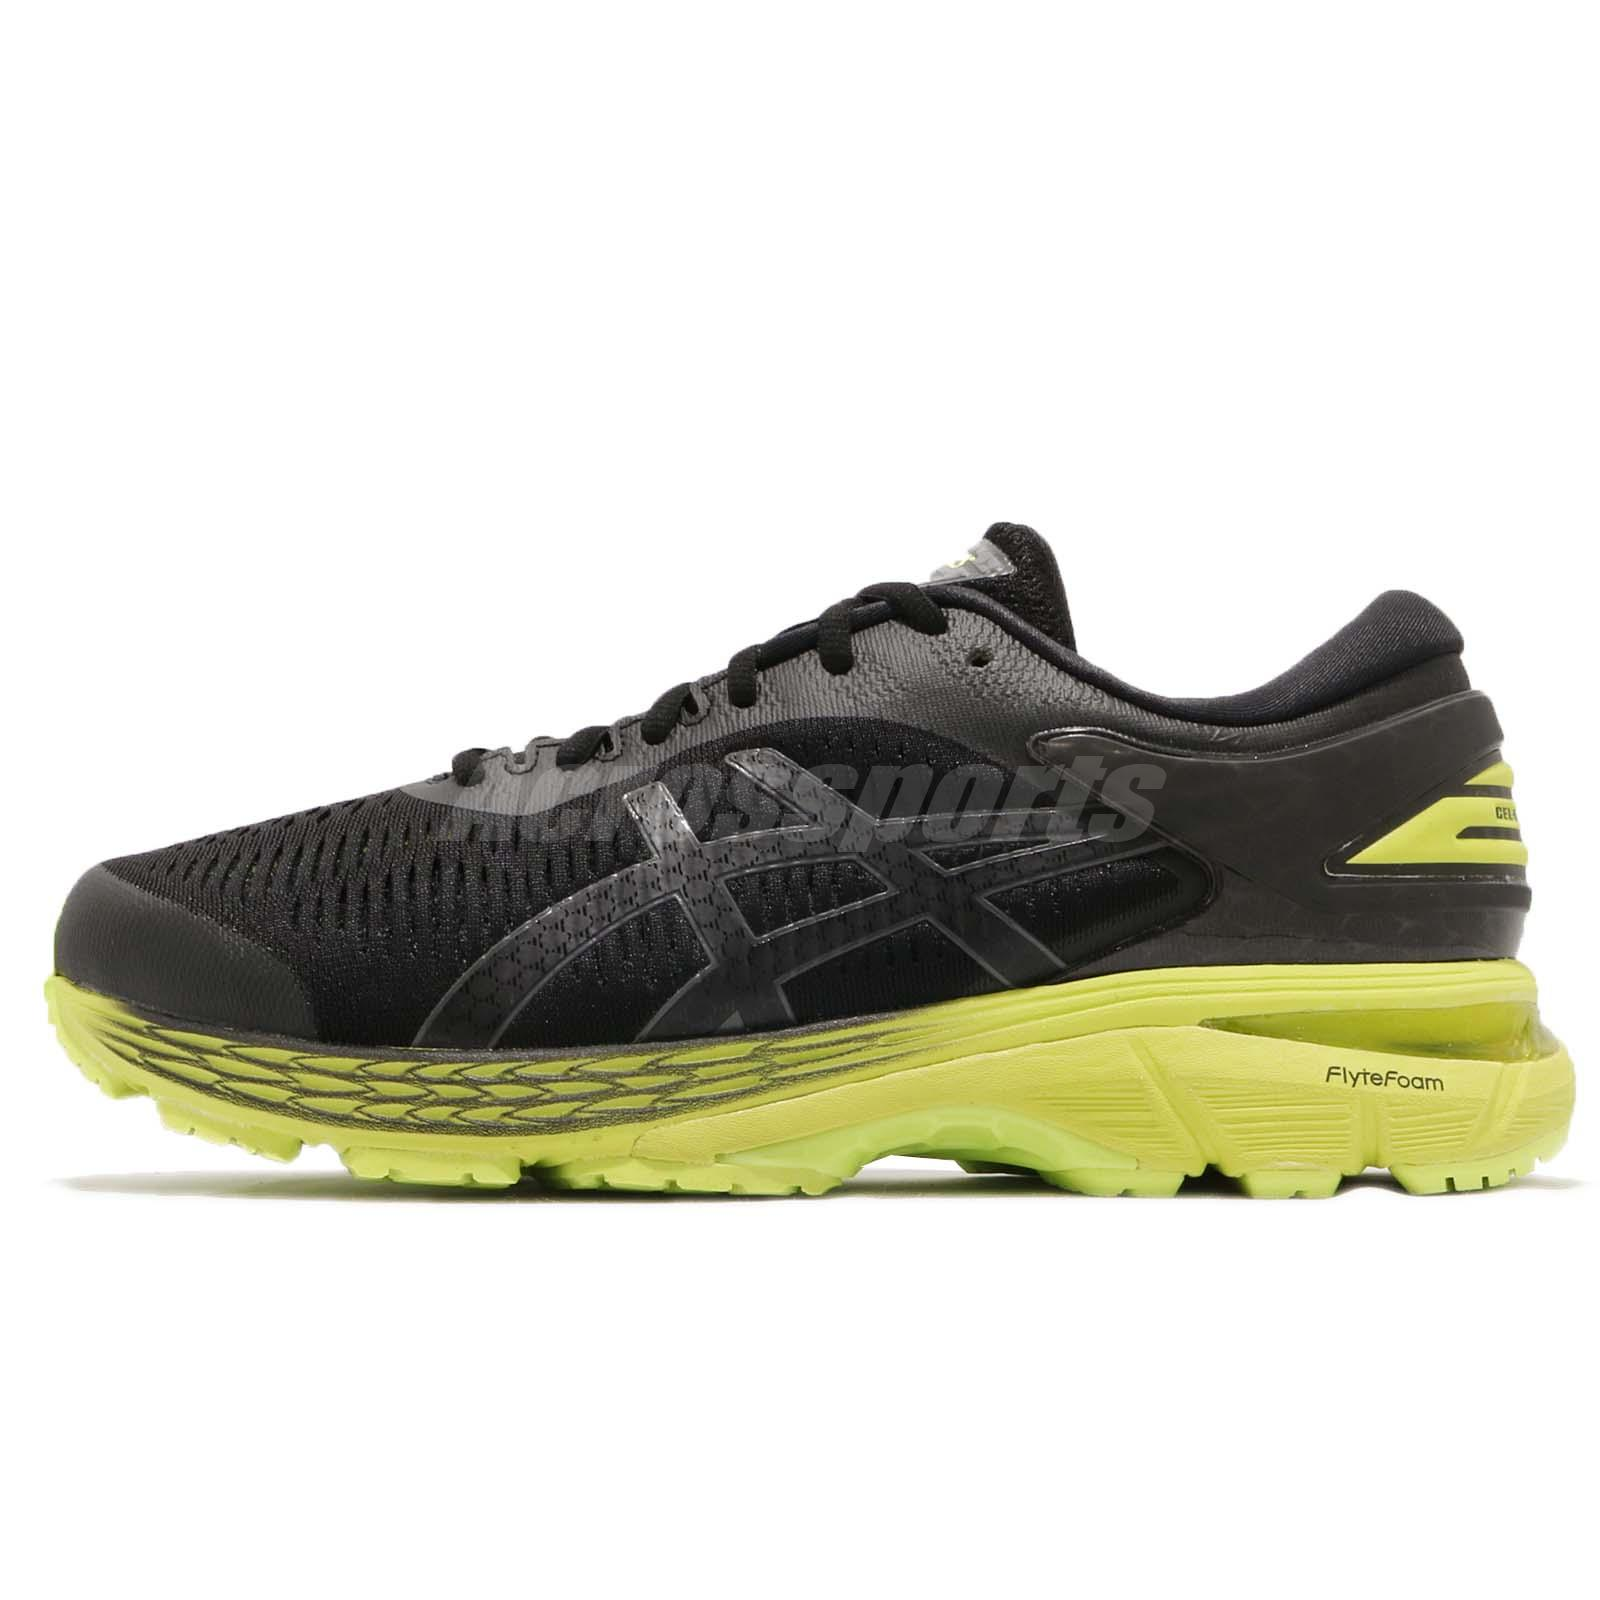 Details about Asics Gel-Kayano 25 2E Wide Black Neon Lime Mens Running Shoes 1011A02-9001